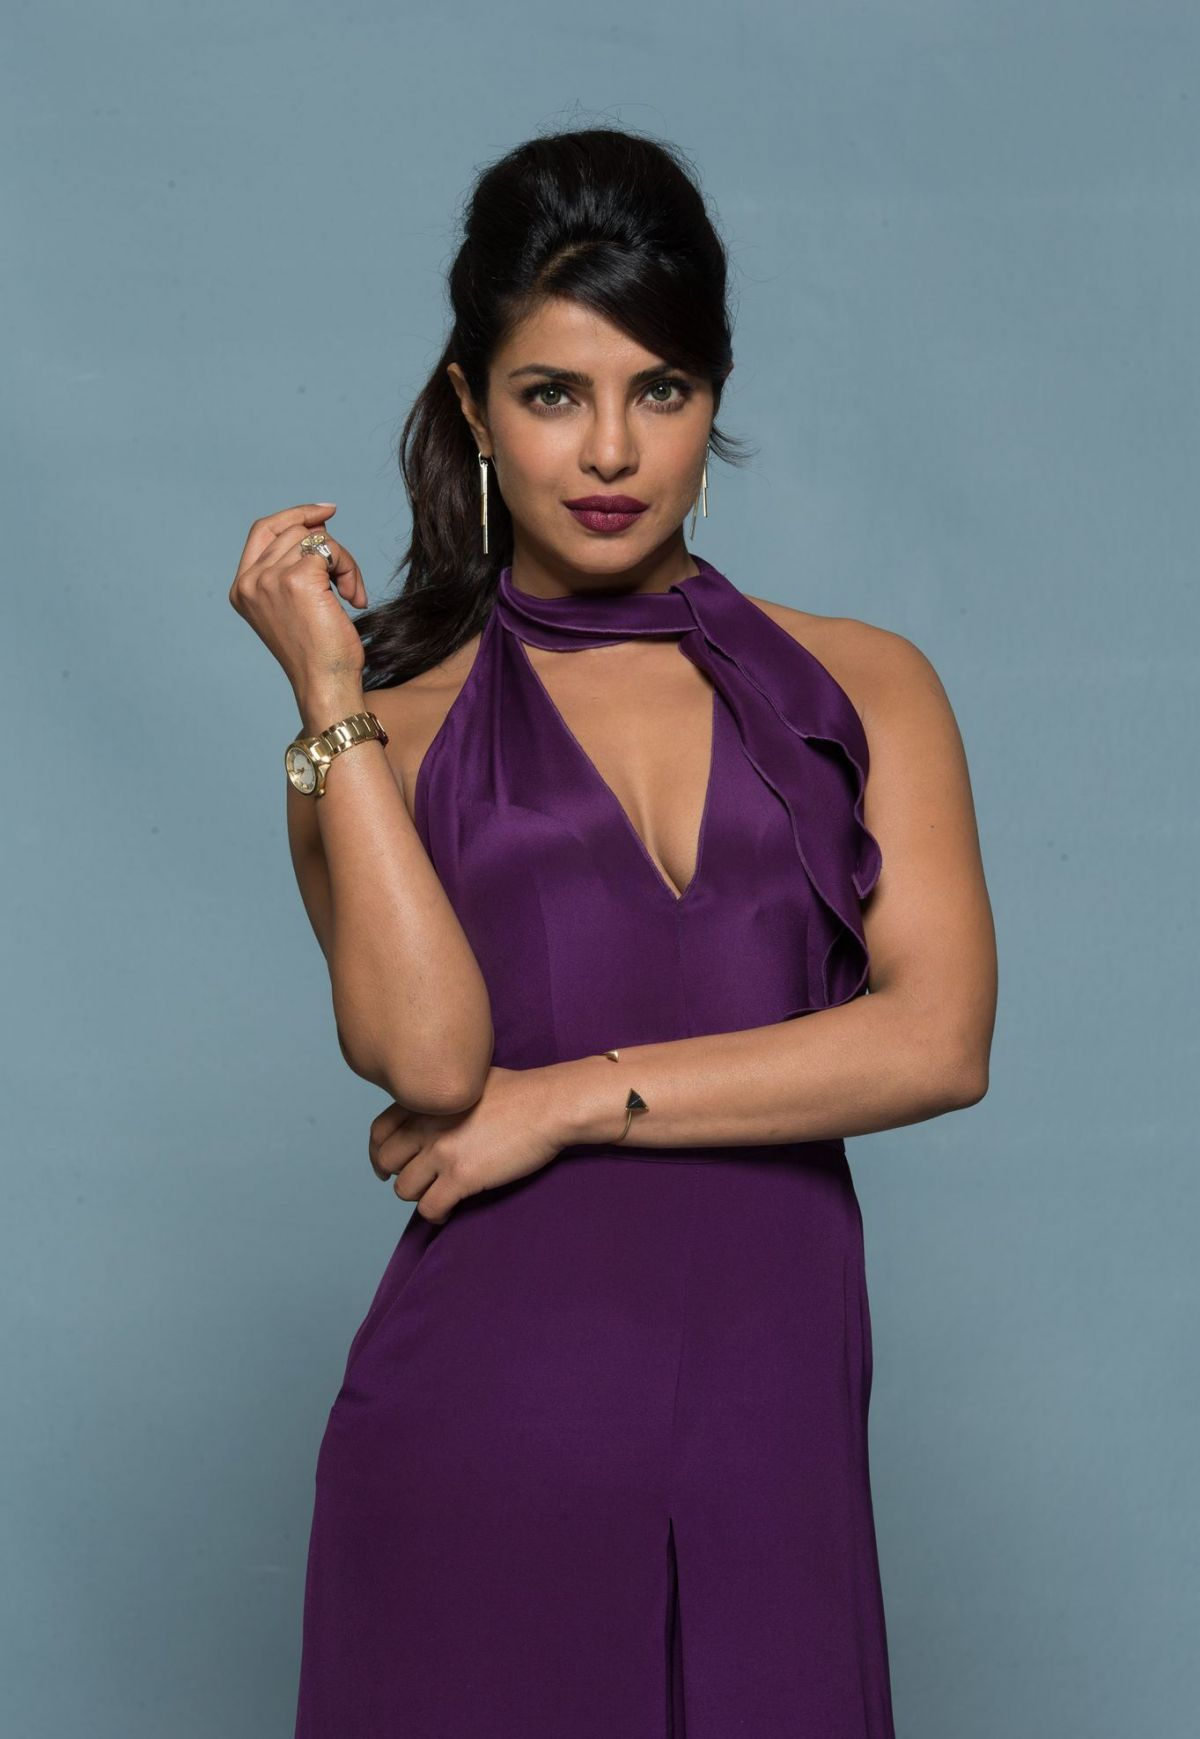 priyanka chopra - photo #46